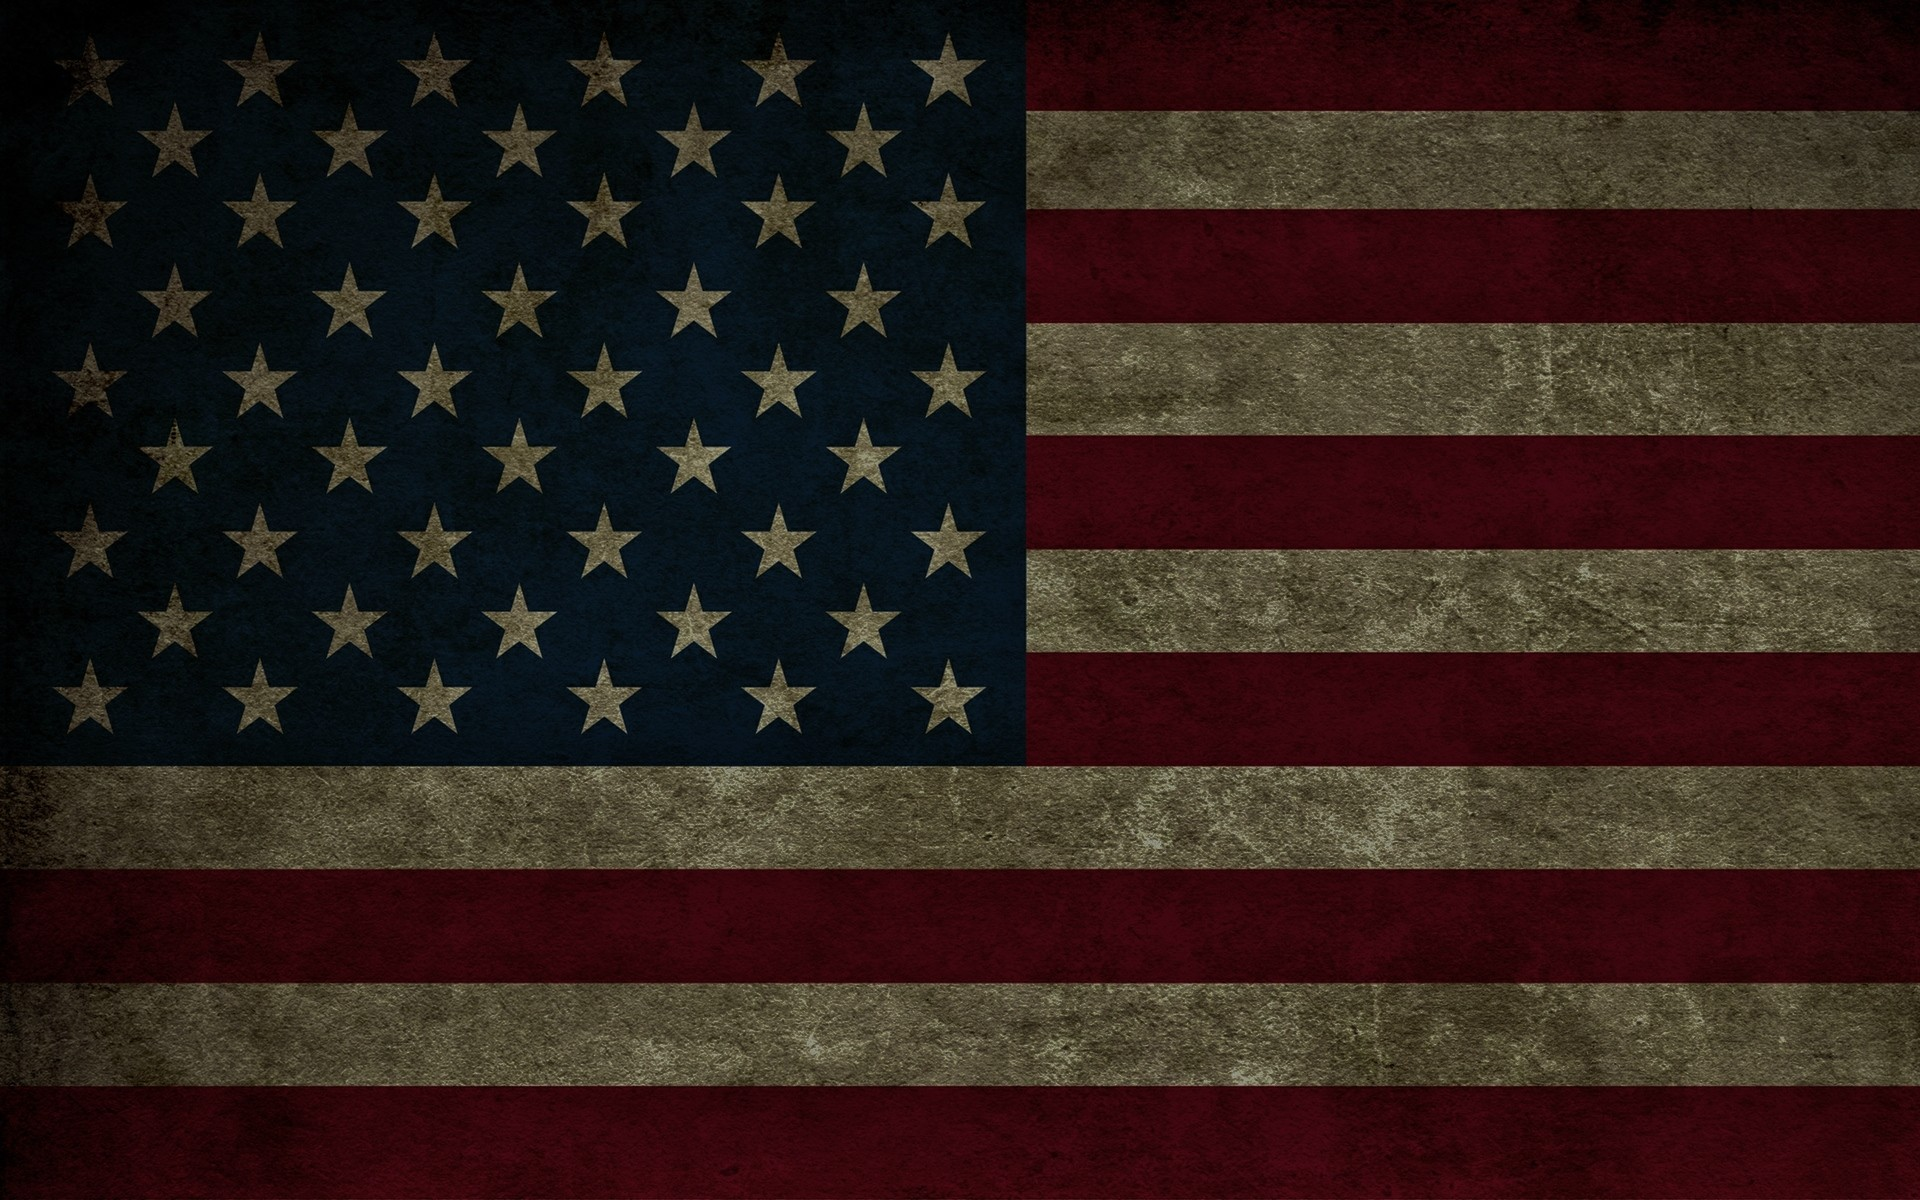 vintage american flag background download free high resolution